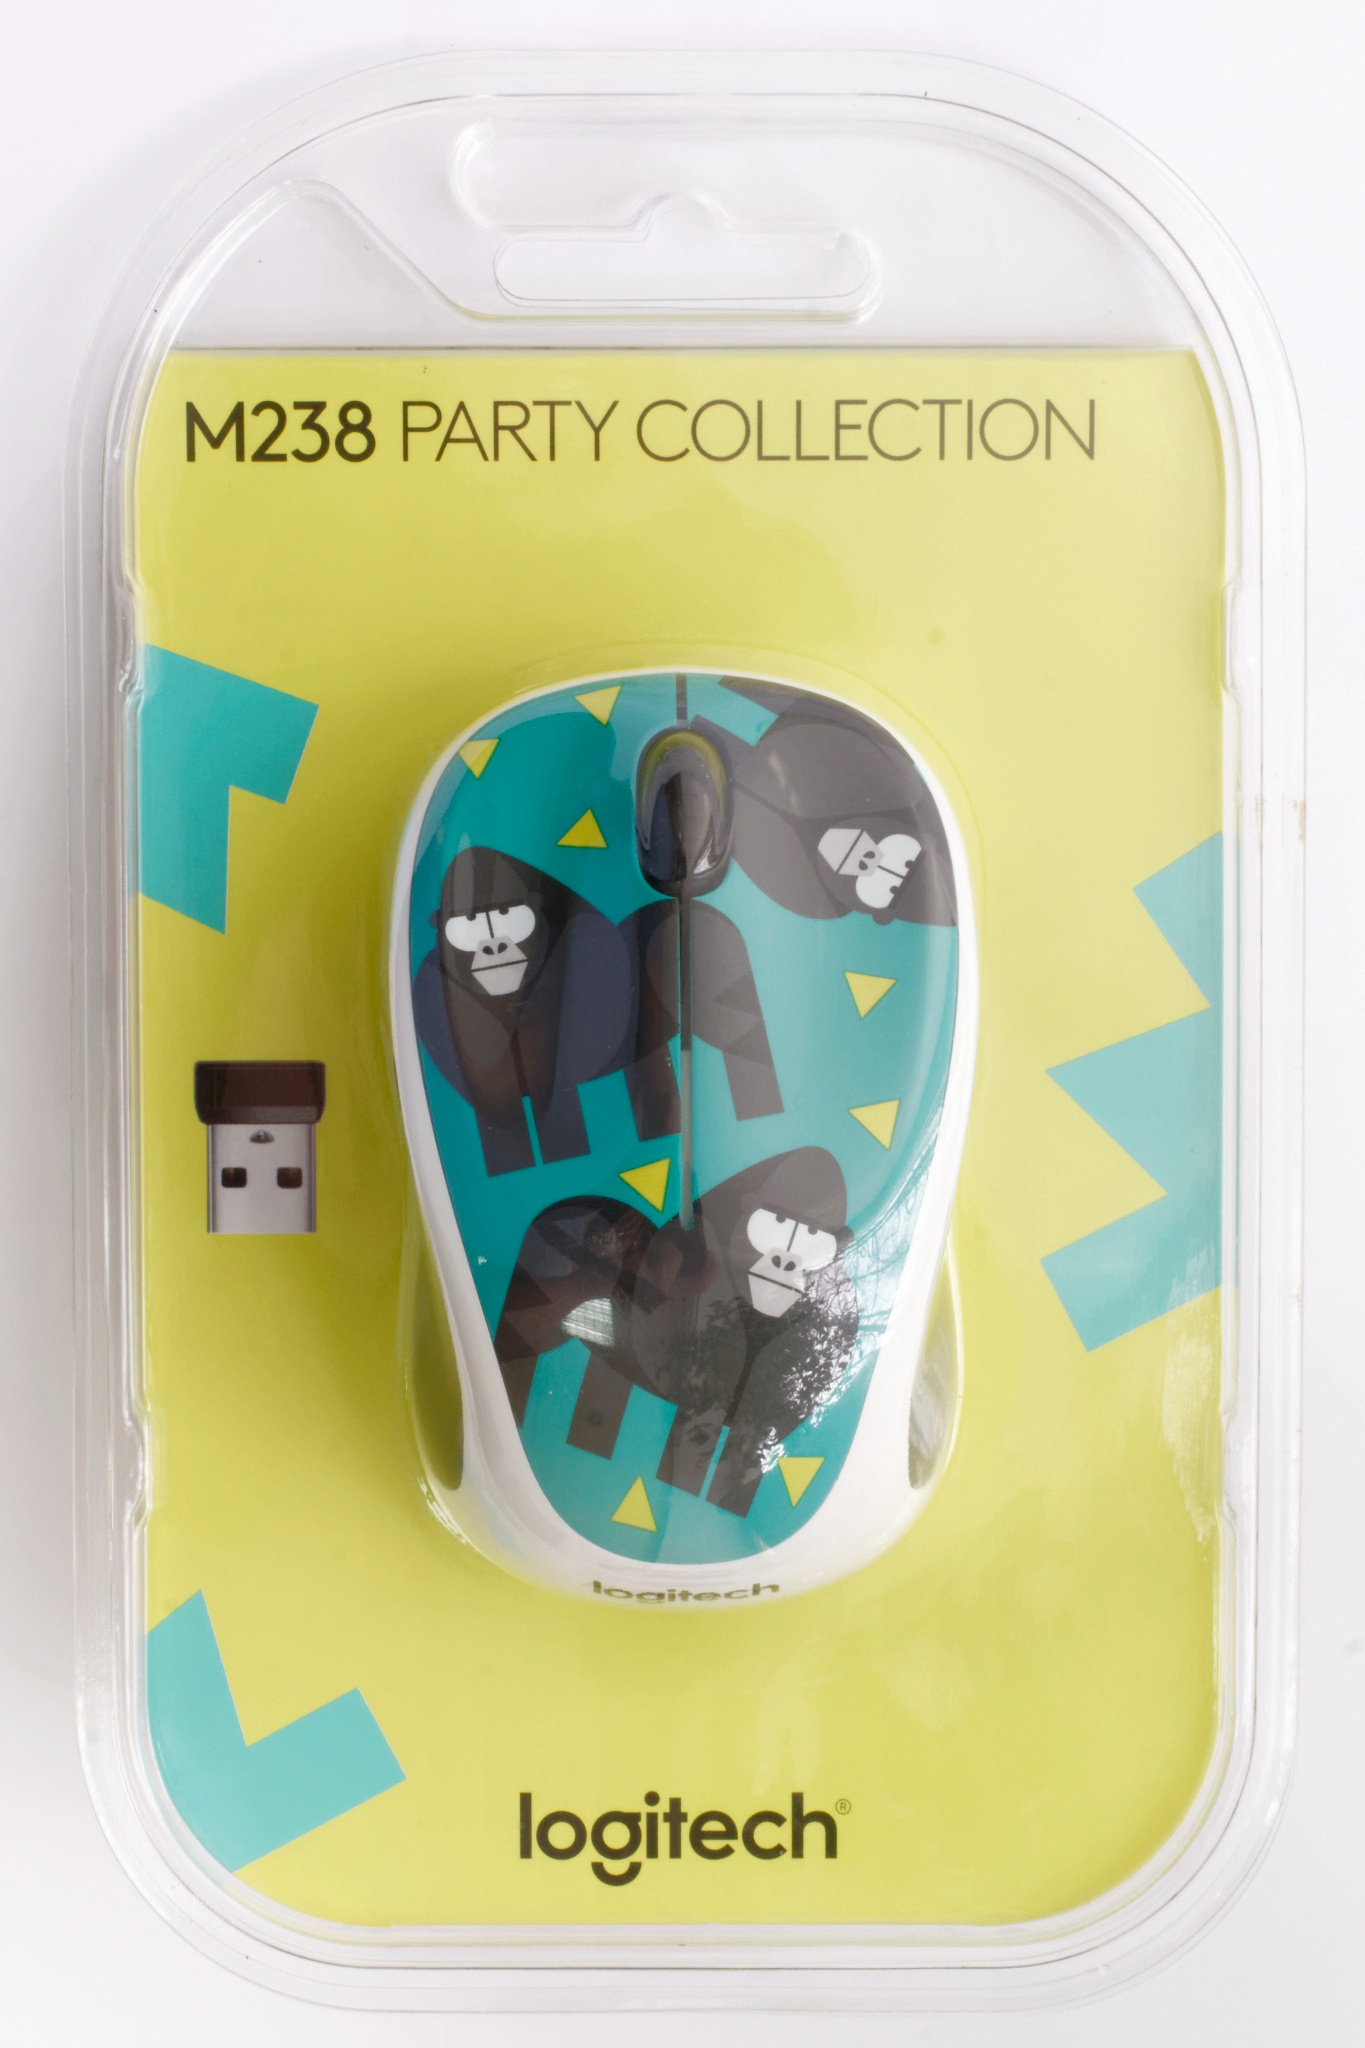 Logitech Wireless Mouse M238 Party Collection L070 Gorilla3 Daftar Gorilla 910 004715 1